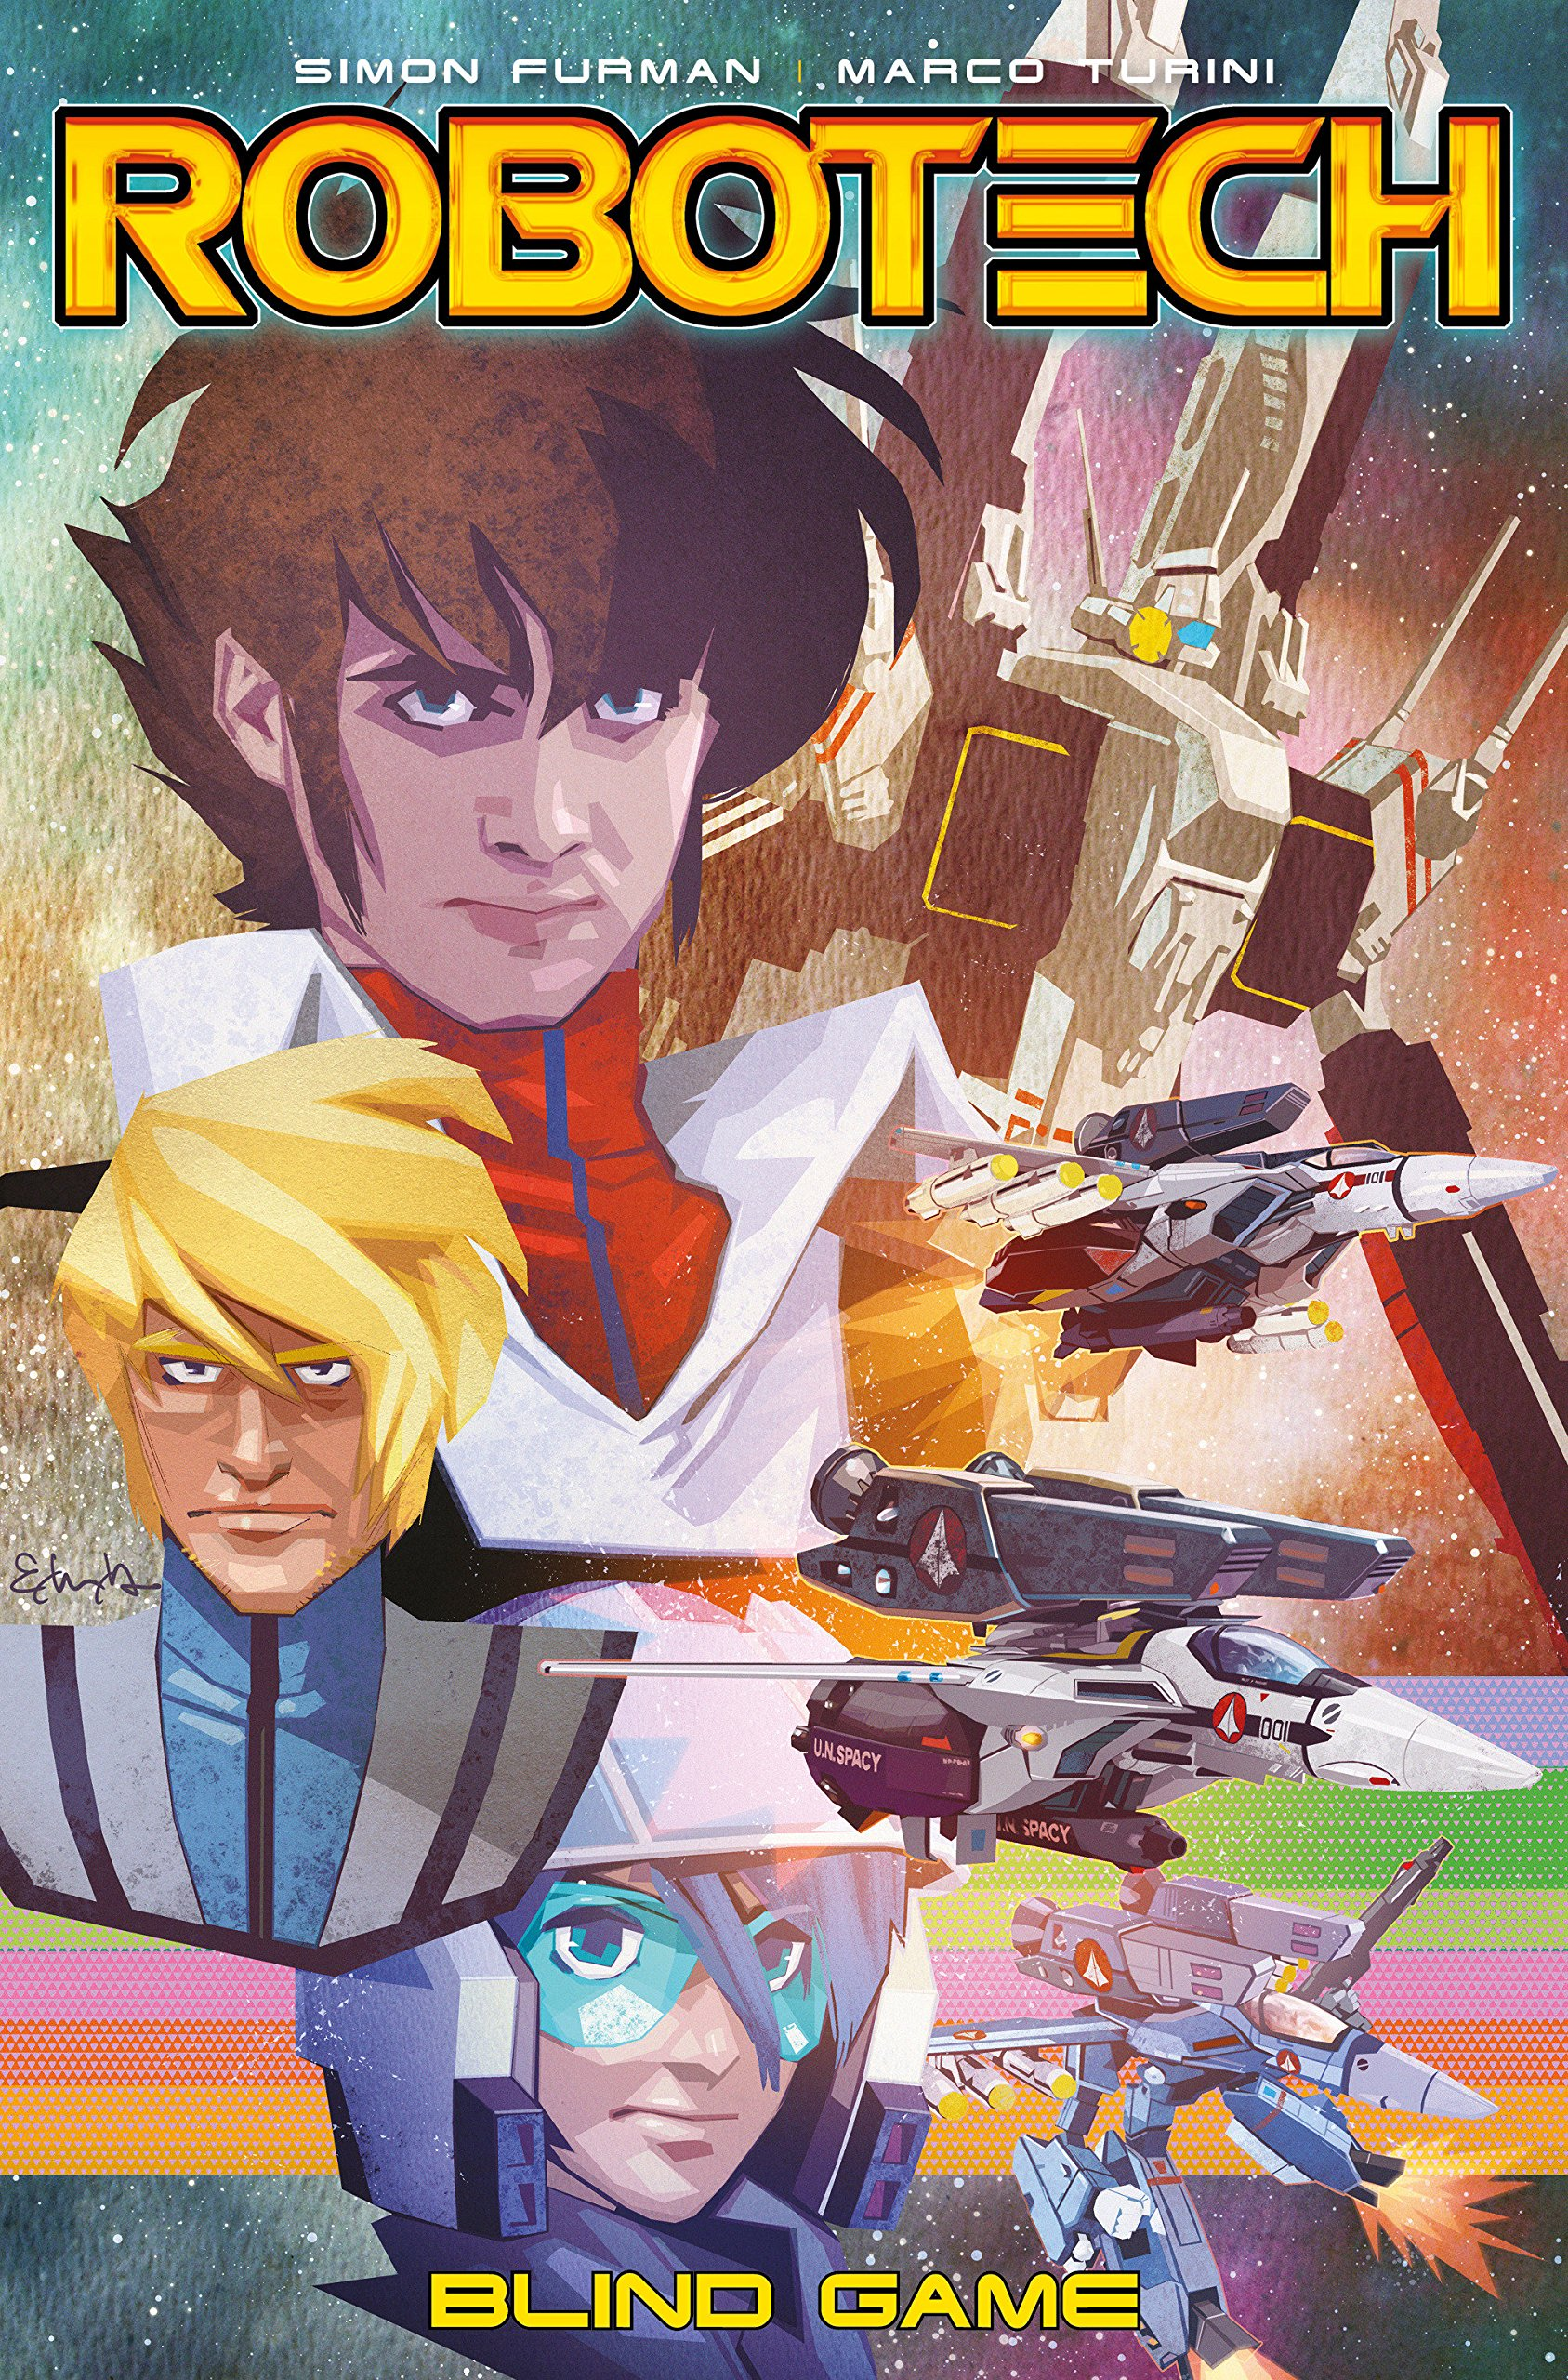 Robotech Volume 3 - Blind Game by Titan Comics